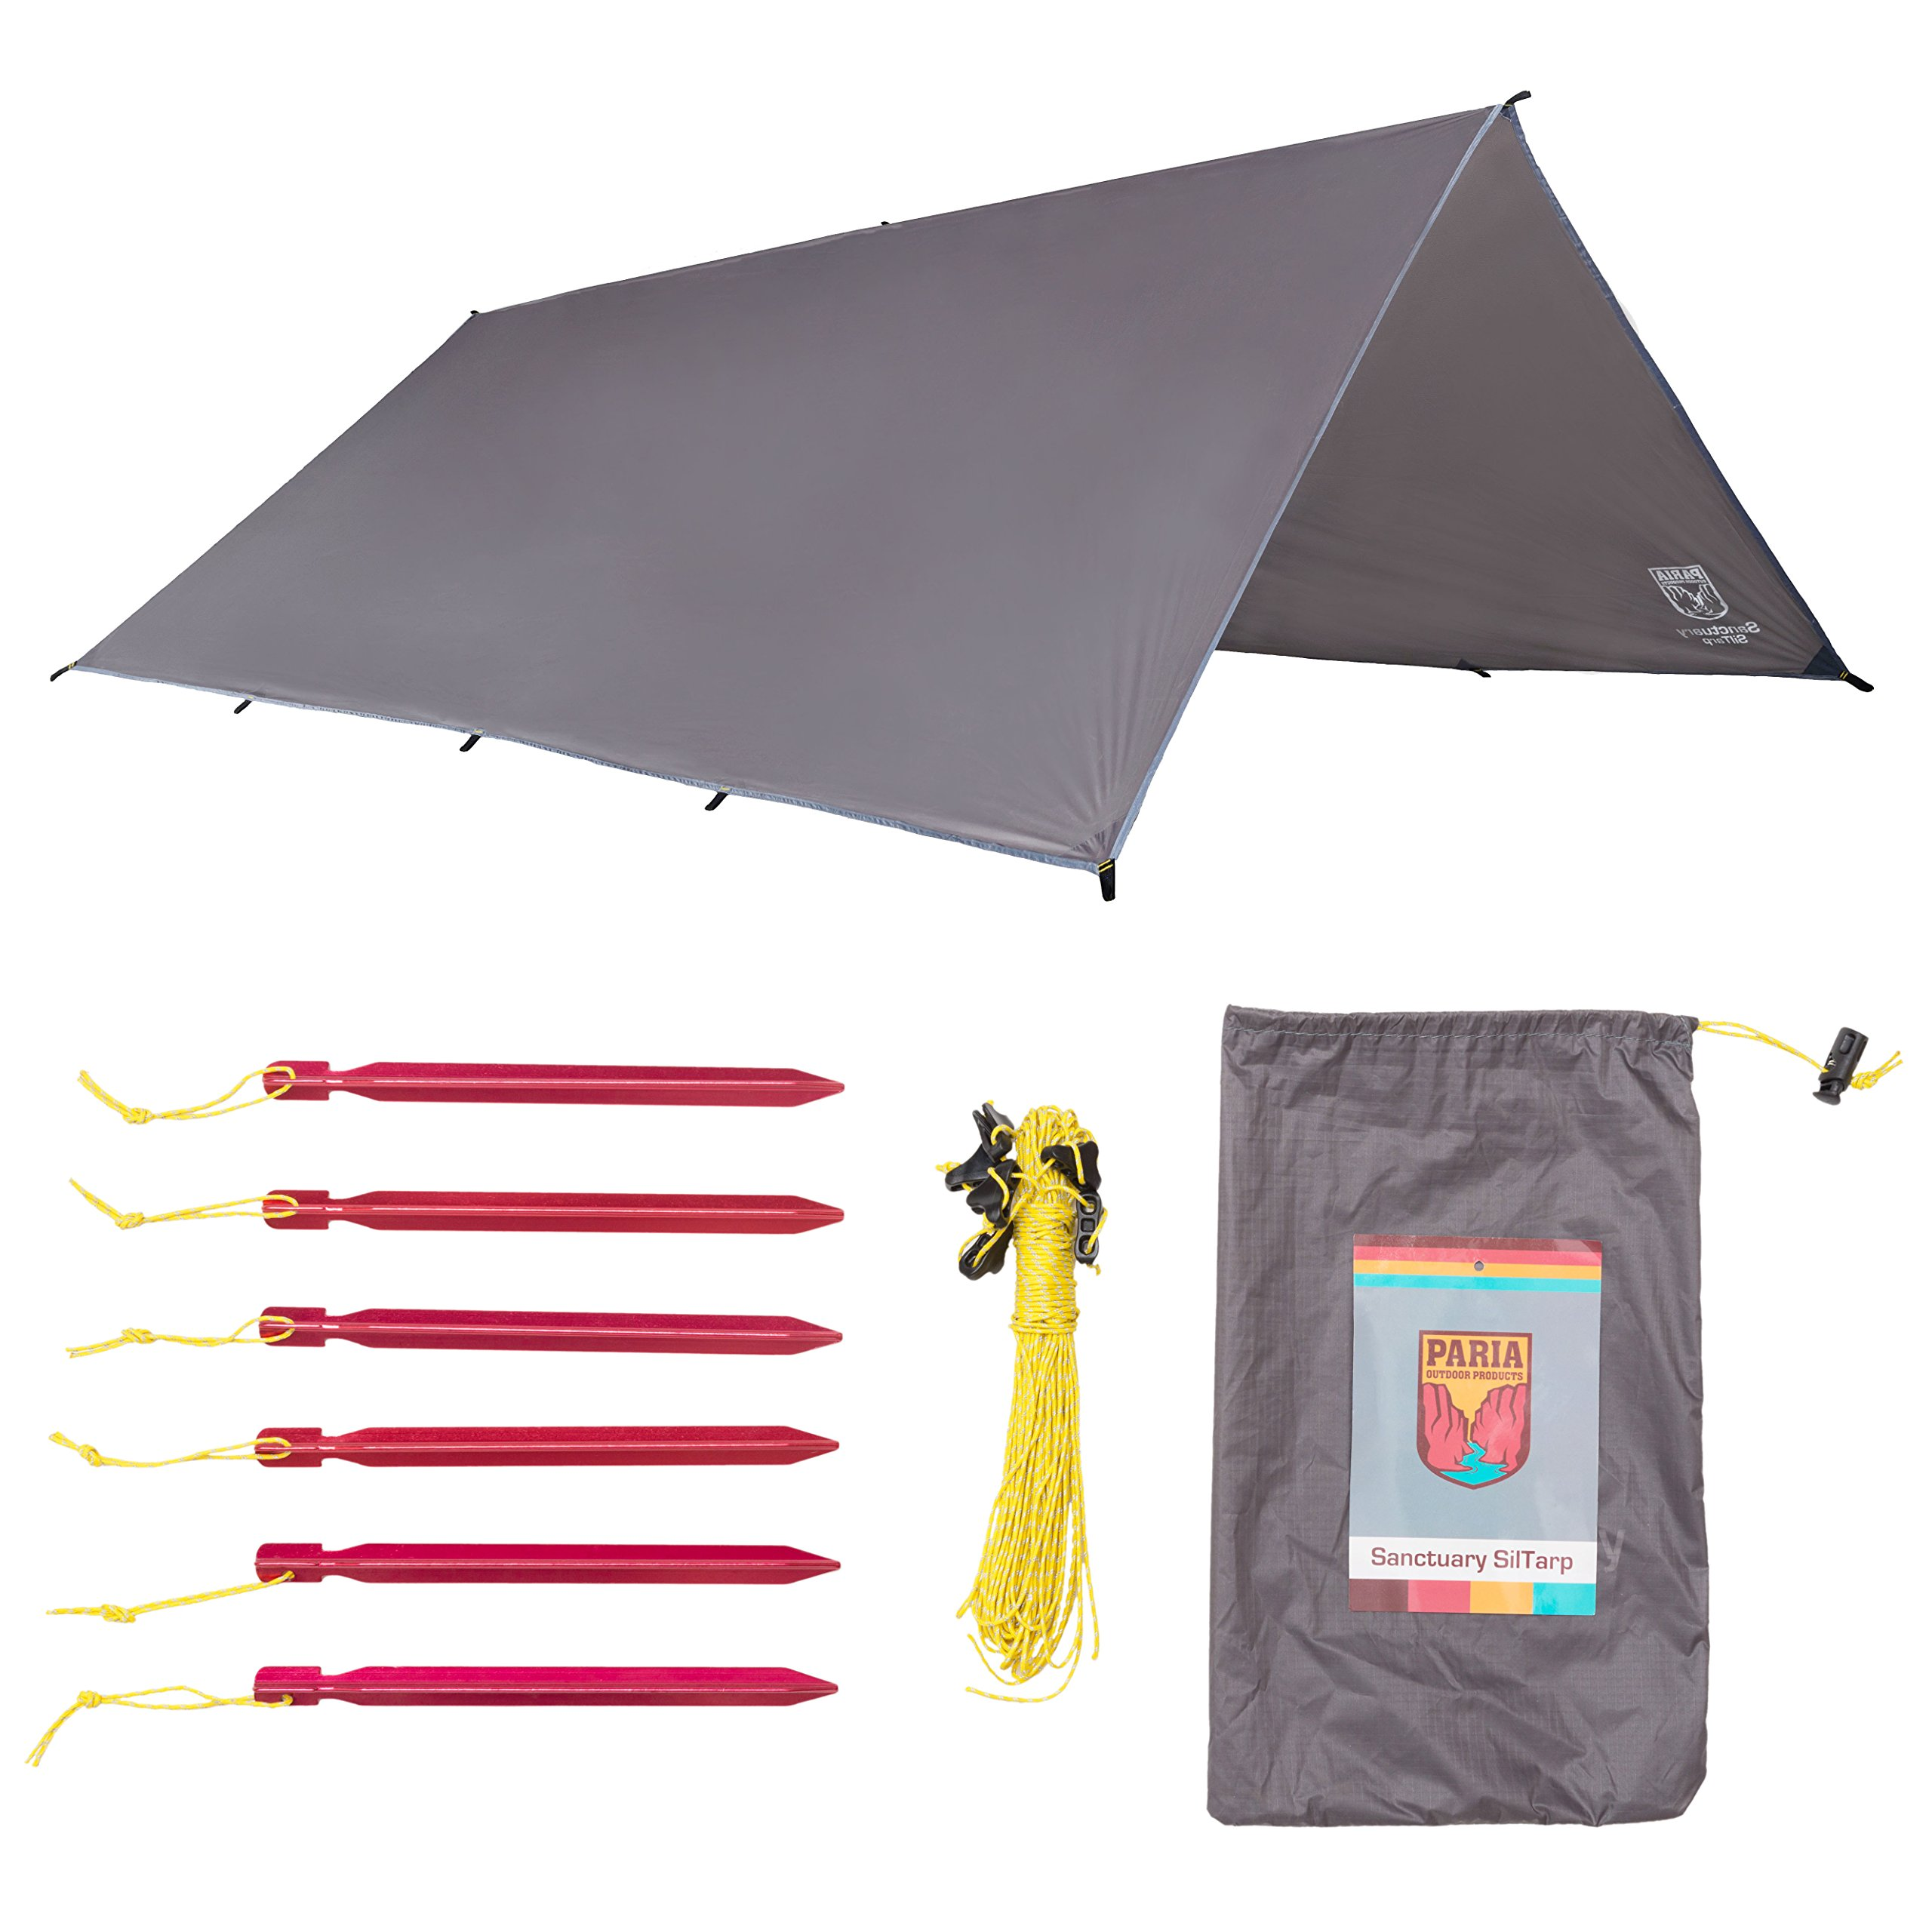 Sanctuary SilTarp - Ultralight and Waterproof Ripstop Silnylon Rain Shelter Tarp, Guy Line and Stake Kit - Perfect for Hammocks, Camping and Backpacking (10 feet by 7/5 feet - Tapered Cut) by Paria Outdoor Products